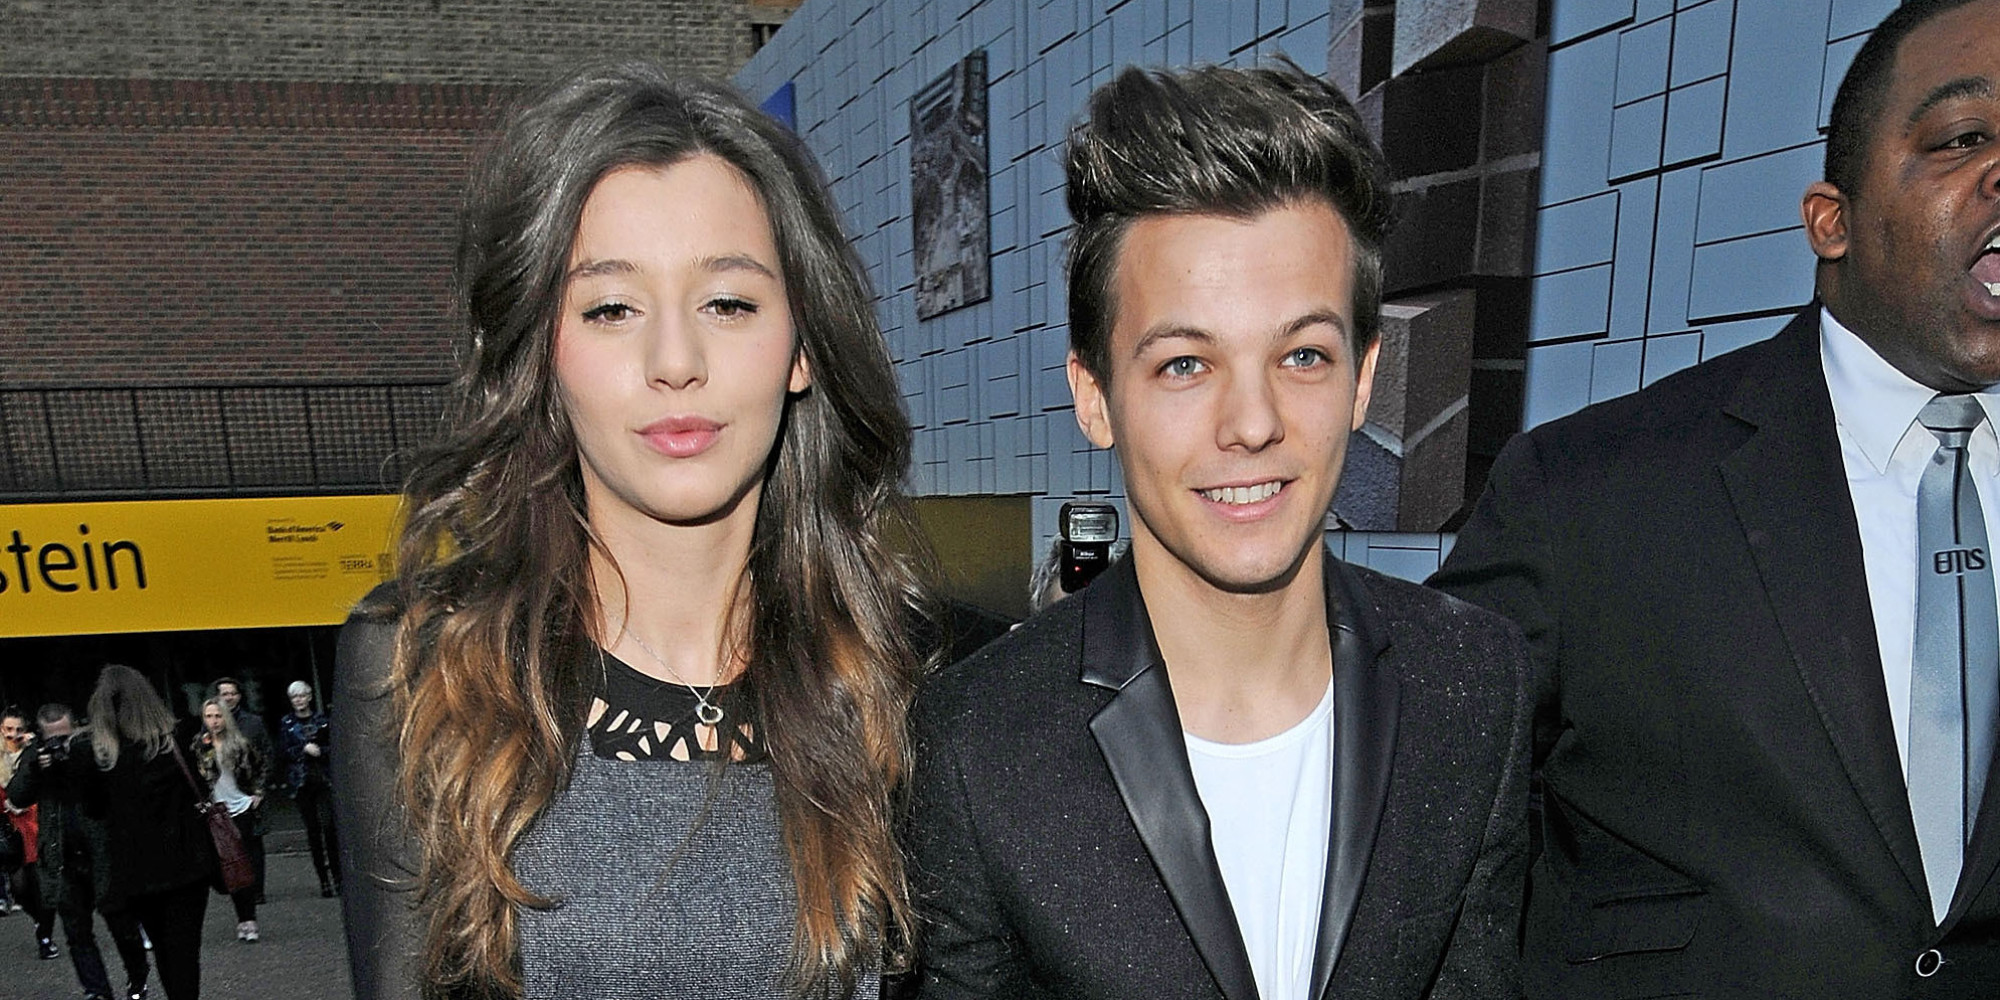 Are louis and eleanor still dating july 2013 9